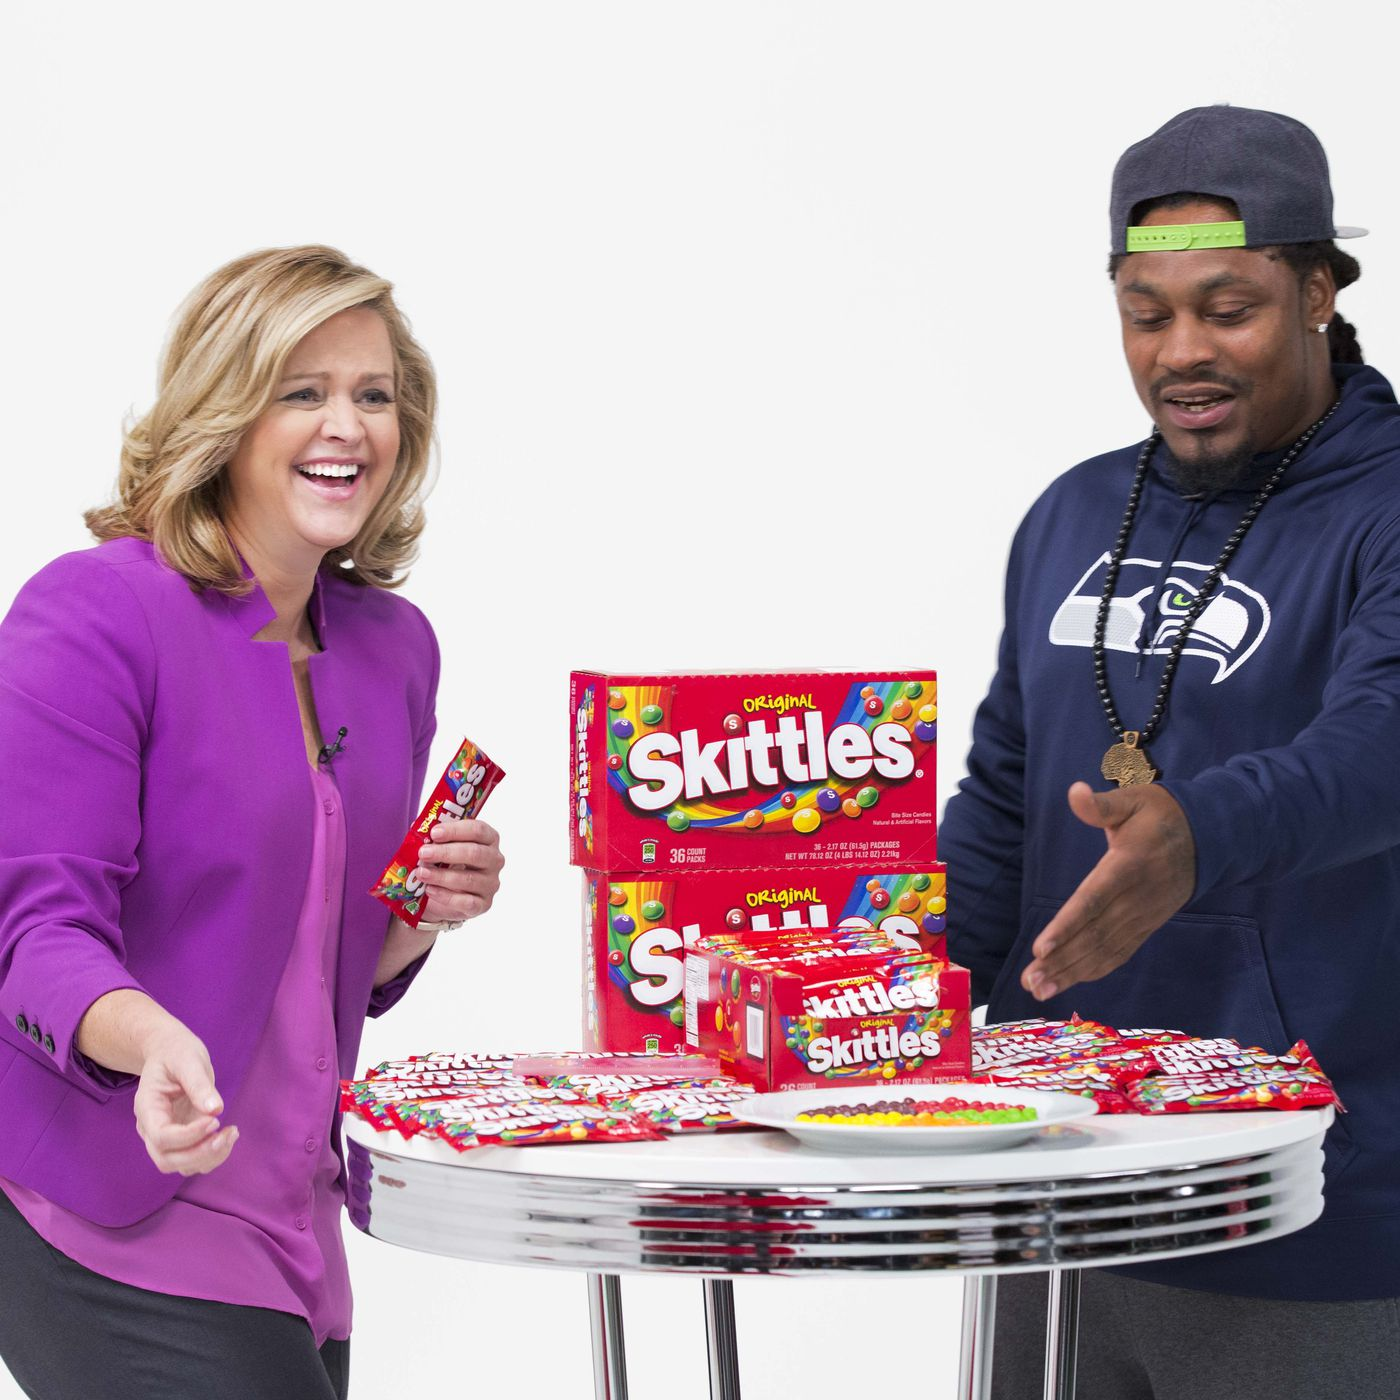 Marshawn Lynch's live appearance talking Skittles on EVINE